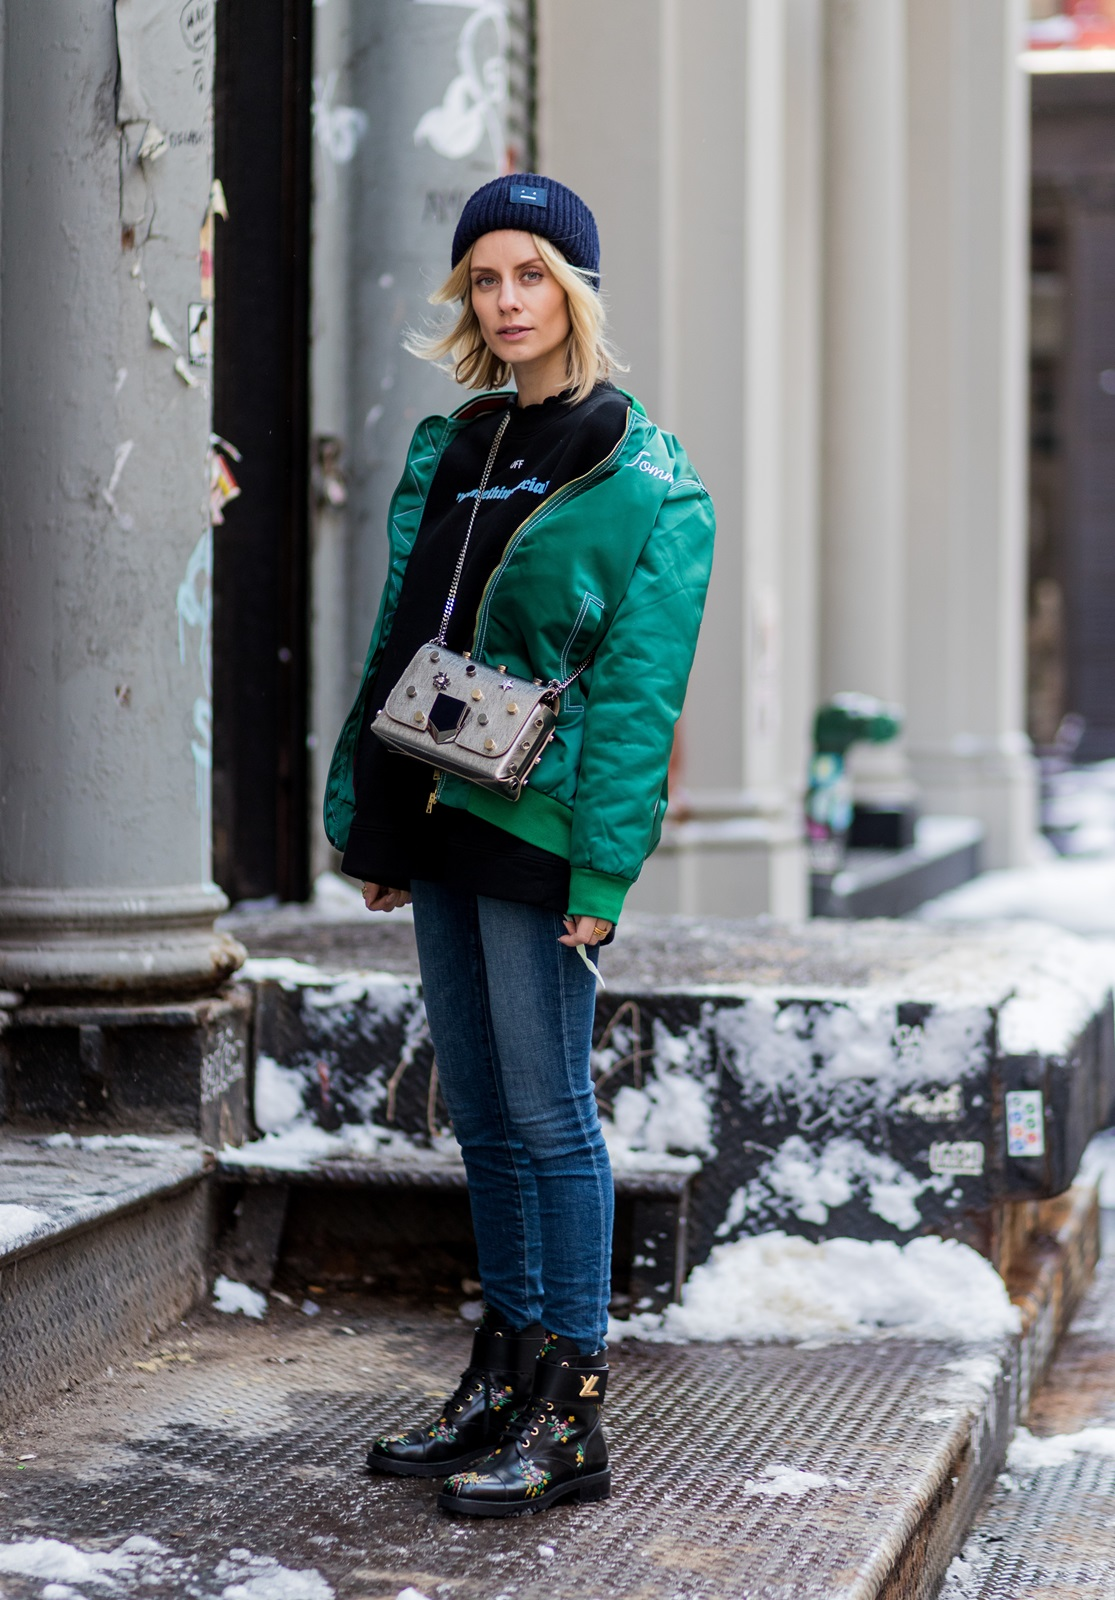 NEW YORK, NY - FEBRUARY 10: Lisa Hahnbueck wearing HILFIGER COLLECTION OVERSIZED BOMBER JACKET, OFF WHITE PRINTED COTTON SWEATSHIRT, JIMMY CHOO LOCKETT BAG, ACNE PANSY BEANIE, LOUIS VUITTON FLACHER WONDERLAND RANGER BOOT on February 10, 2017 in New York City. (Photo by Christian Vierig/Getty Images) *** Local Caption *** Lisa Hahnbueck